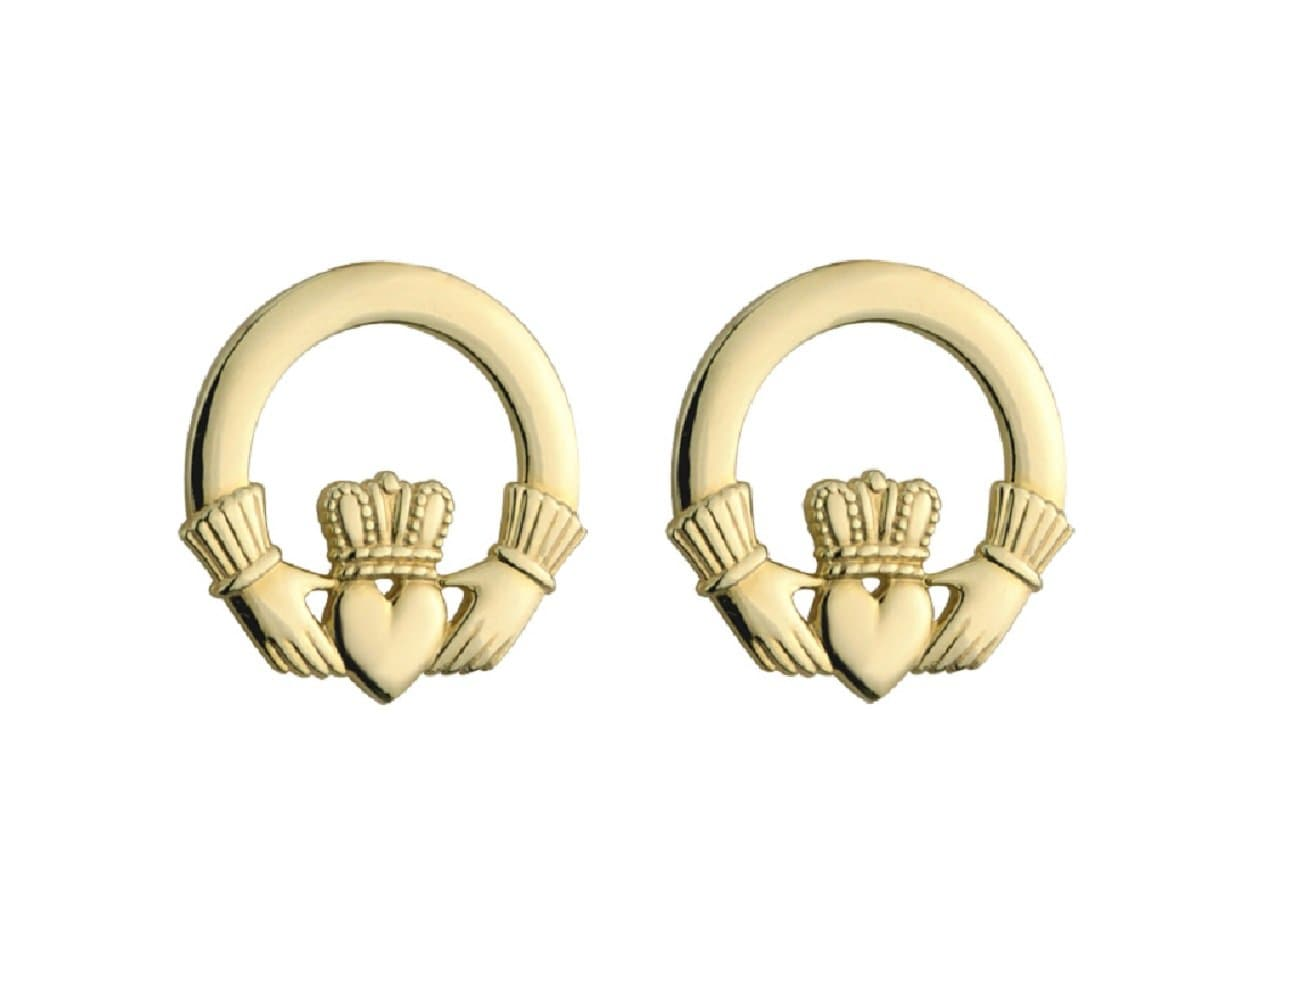 10K Gold Claddagh Stud Earrings Small